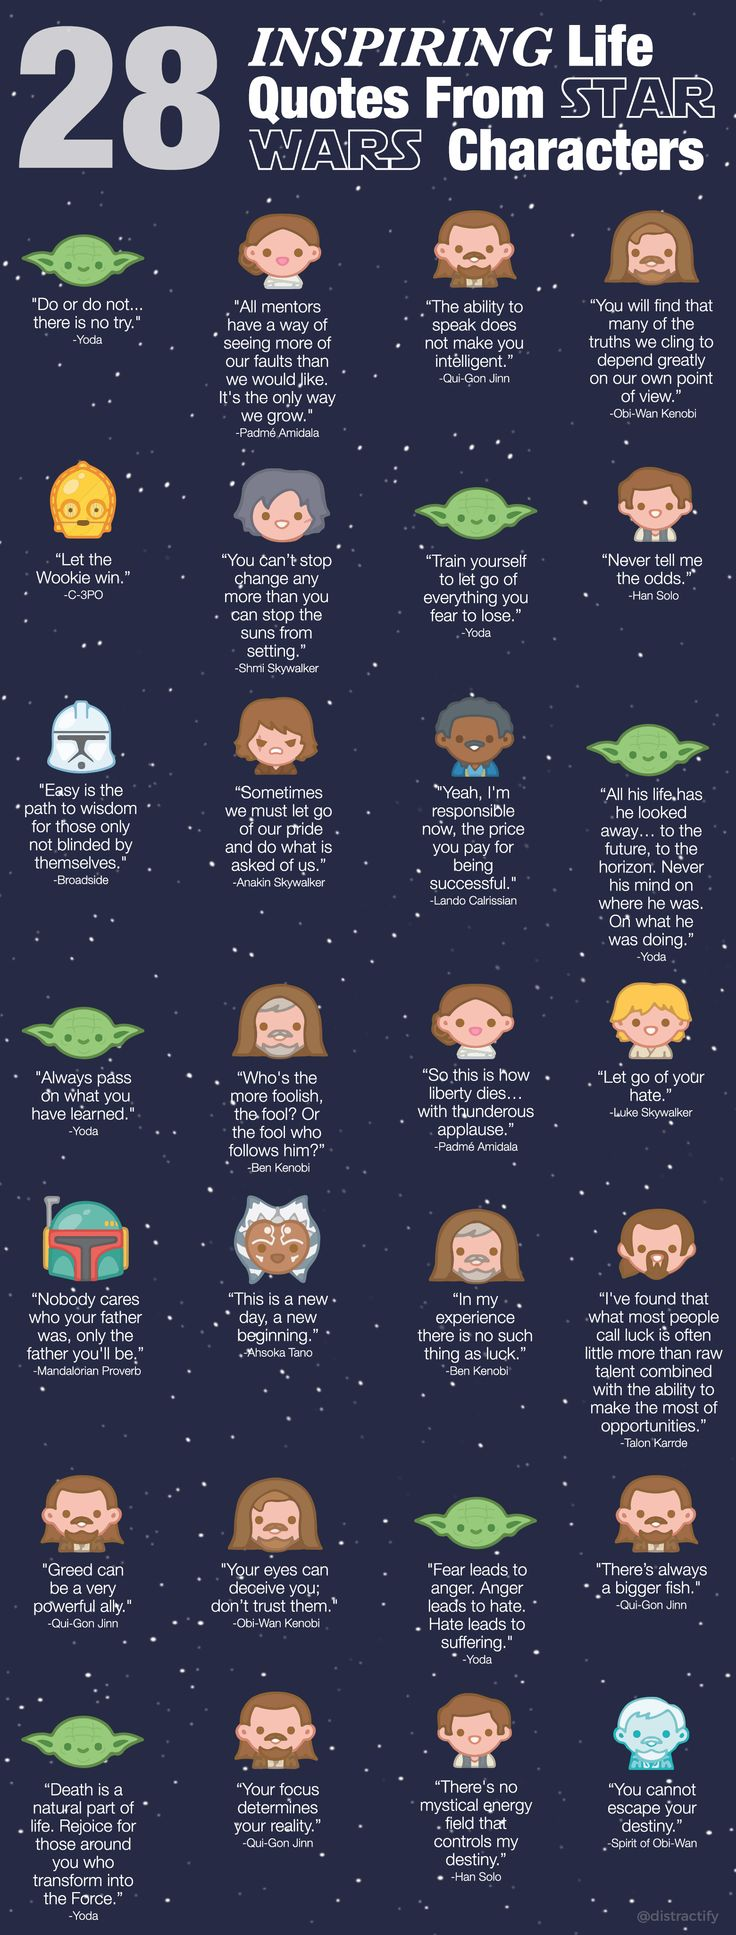 28 Wise Life Quotes from Star Wars You Didn't Realize Were There All Along